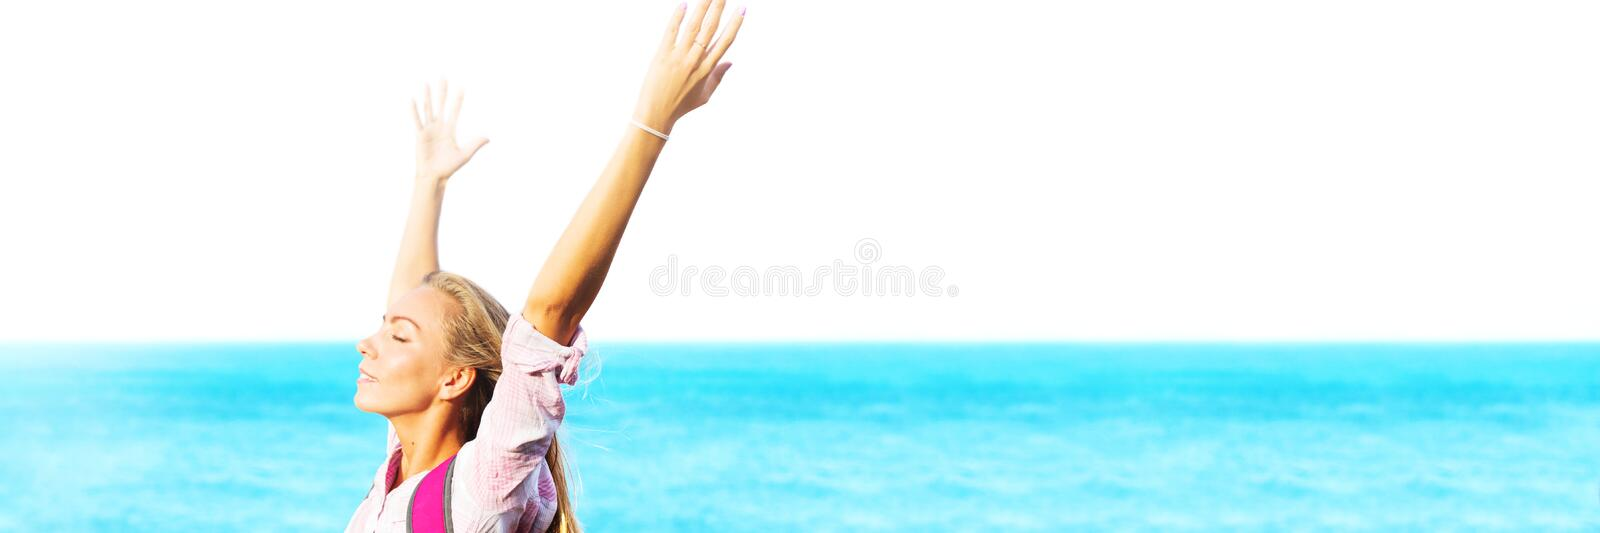 Portrait smiling happy girl hands up landscape royalty free stock photos